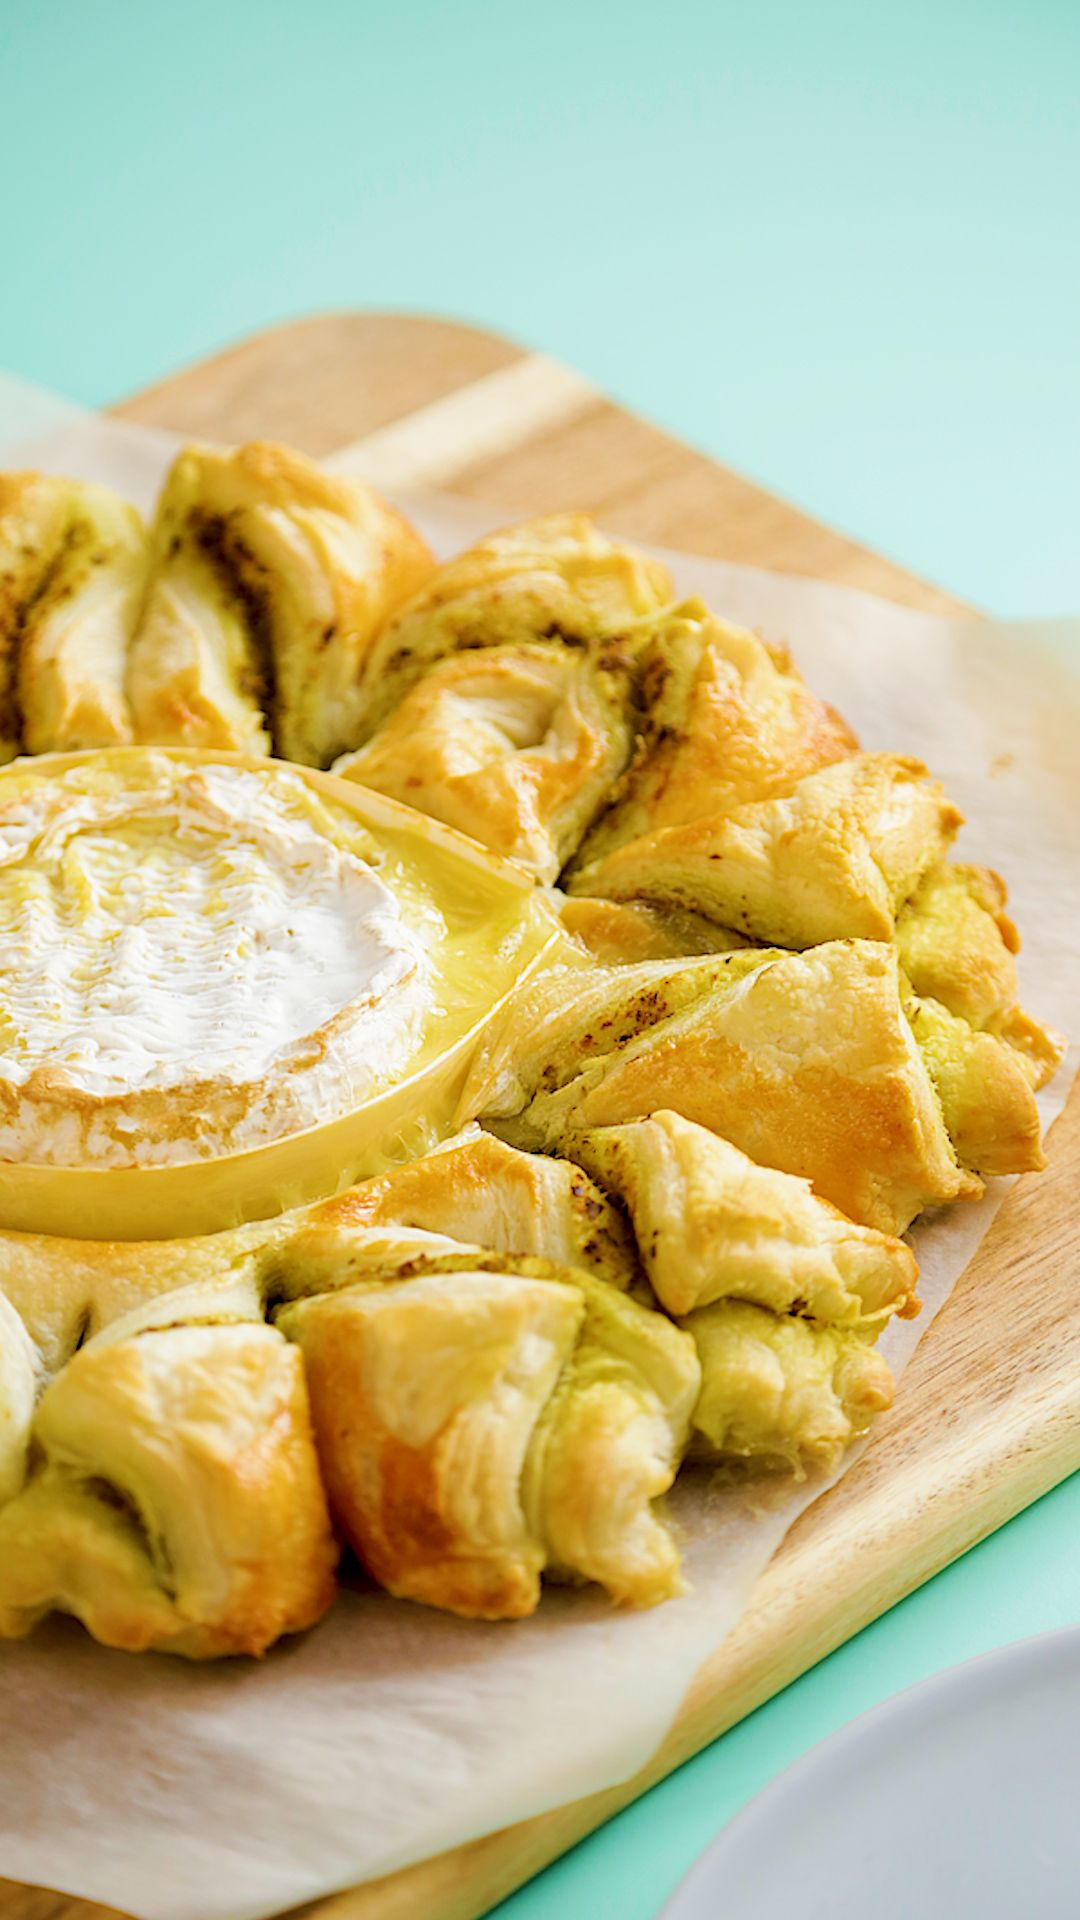 Pesto Camembert With Puff Pastry Twists